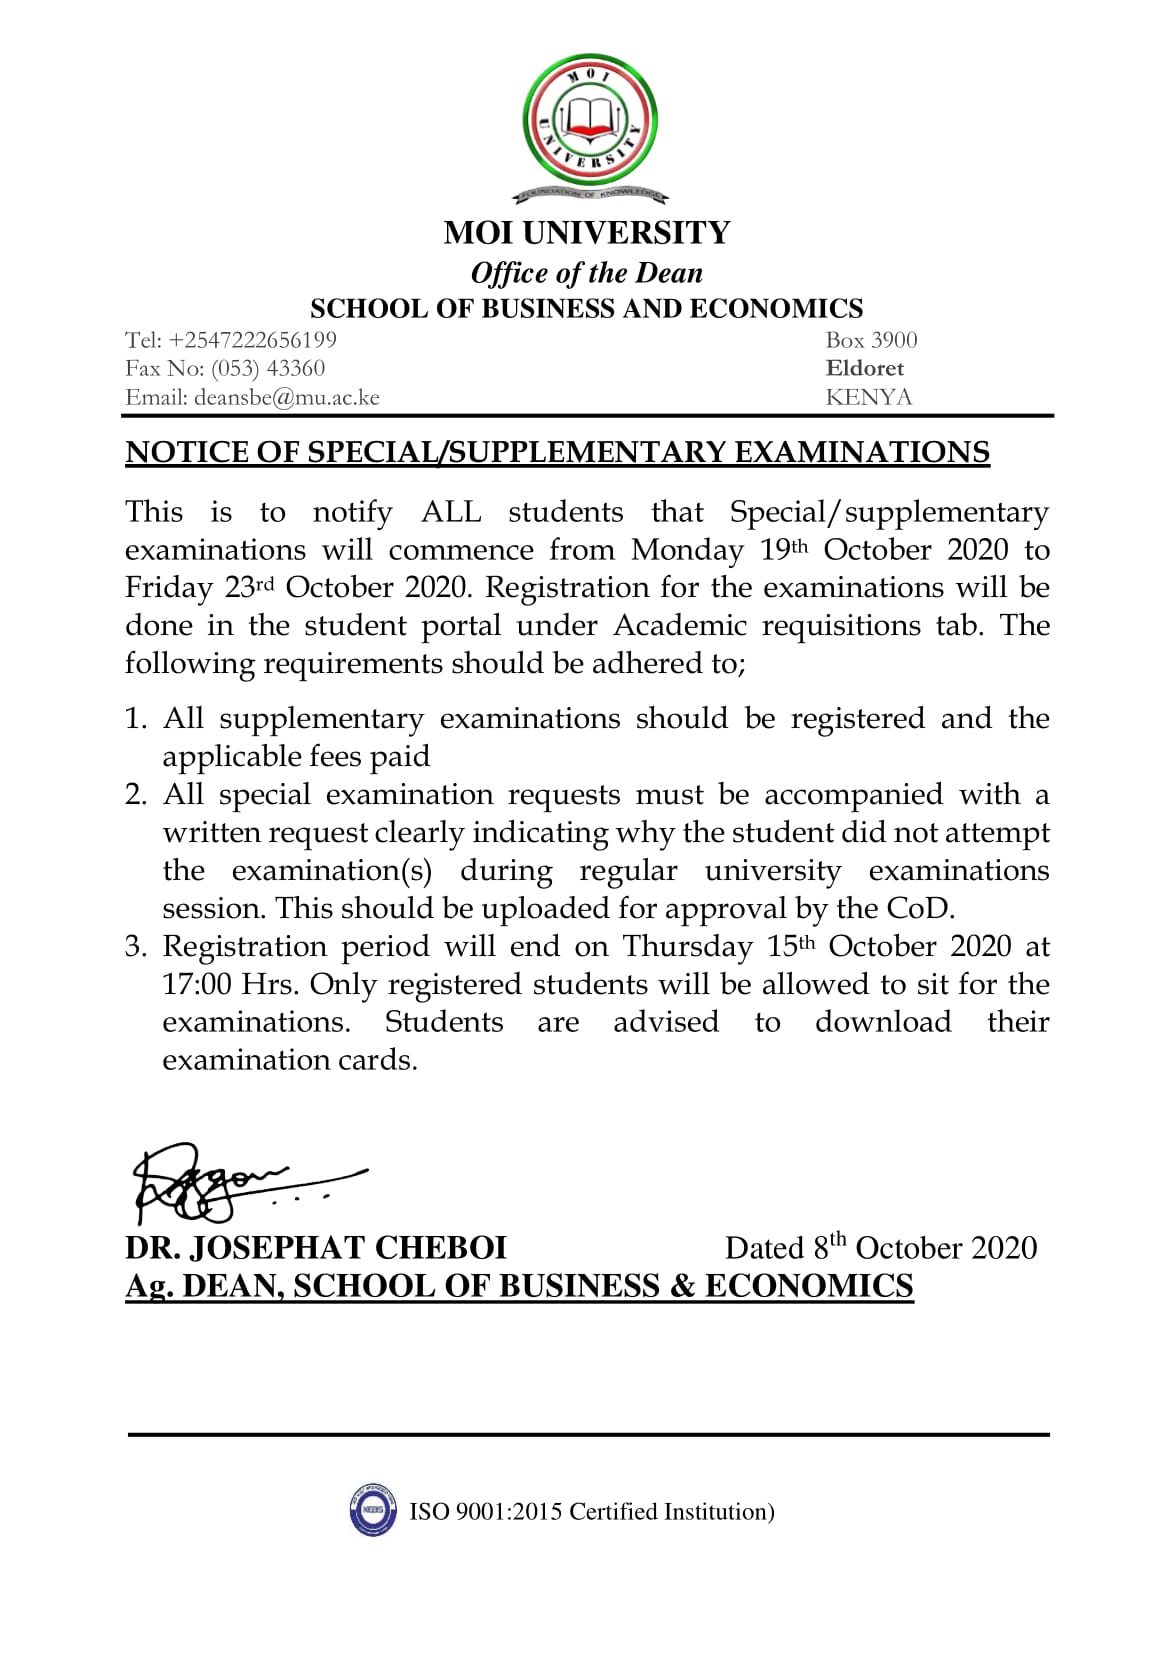 Notice of Special Supplementary Exams October 2020